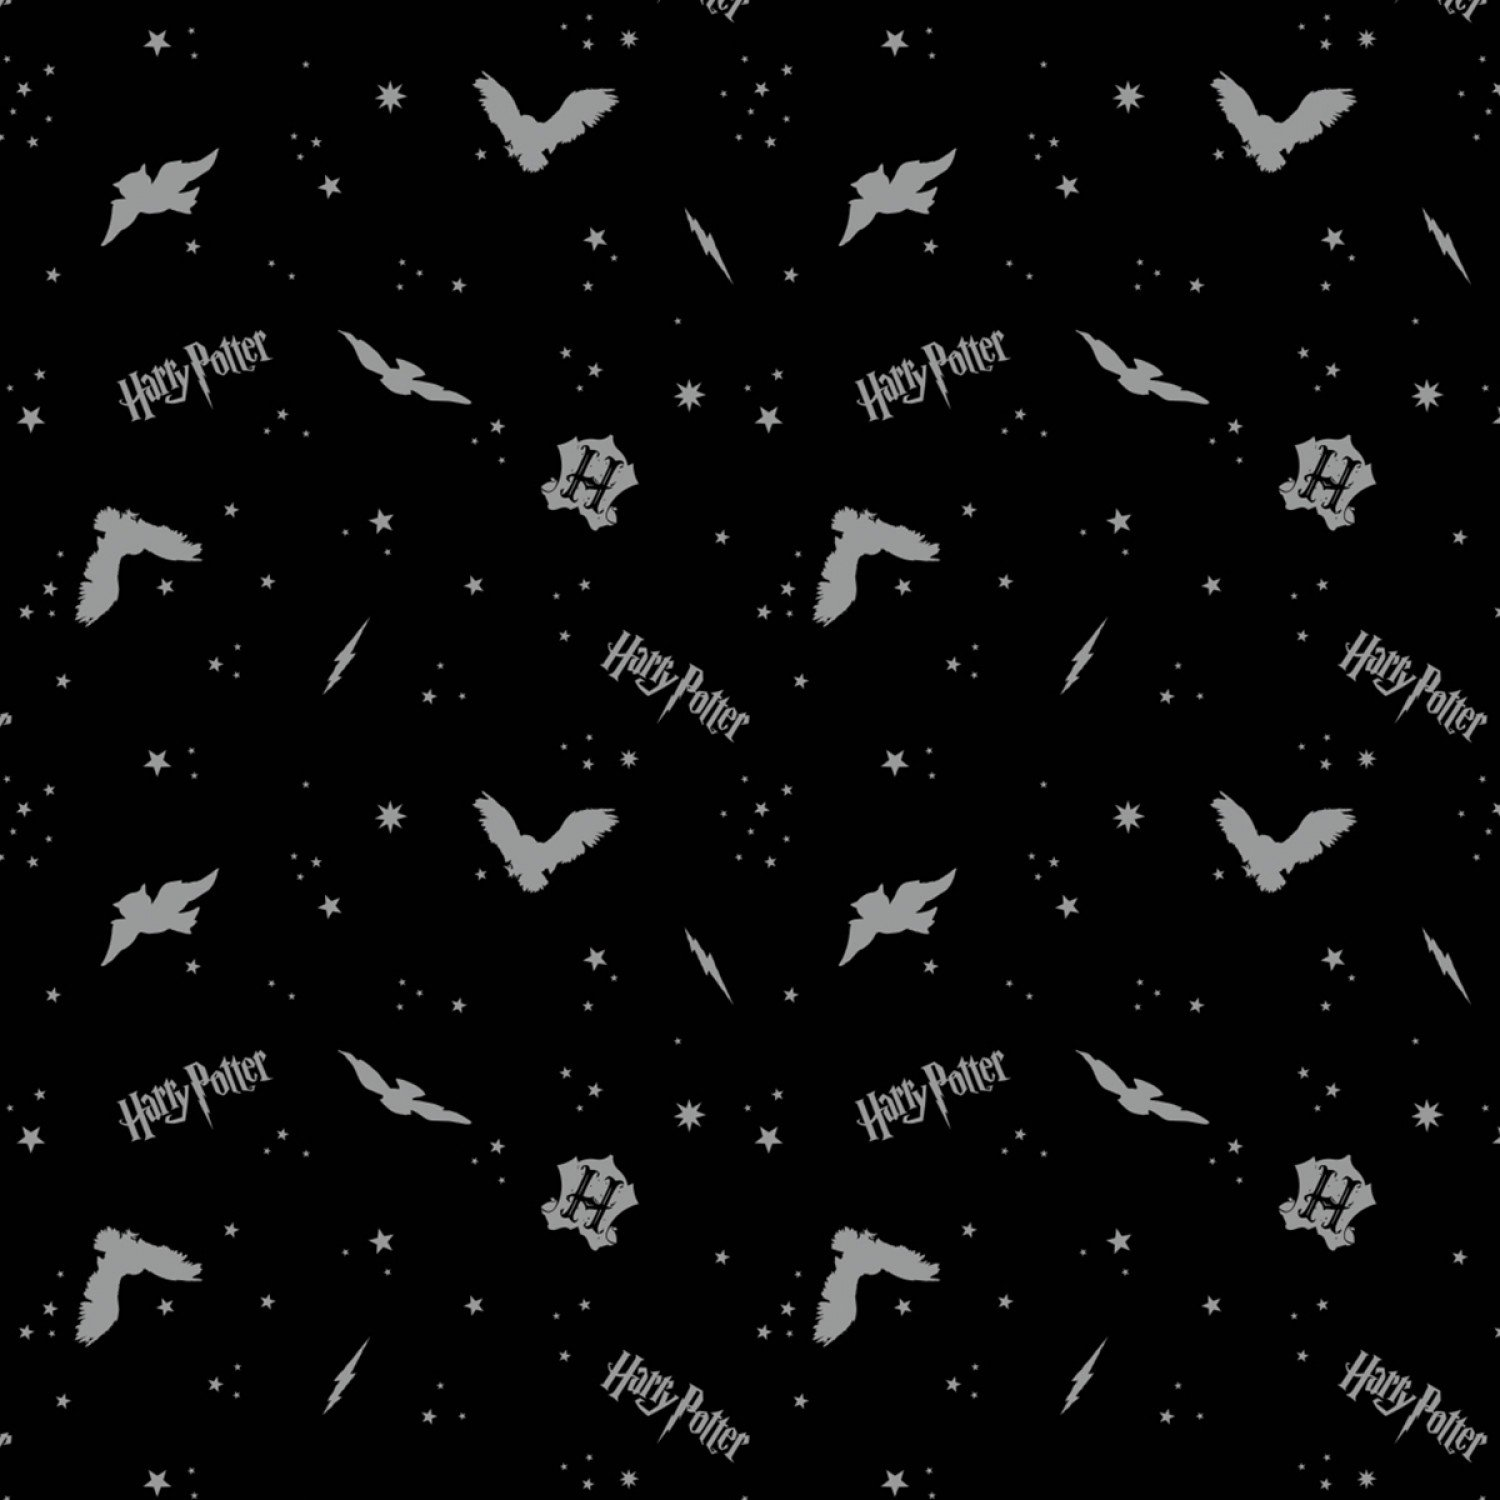 Foust Textiles - Harry Potter - Wizarding World - Assets w/Metallic on Flannel - Black In the Night Sky